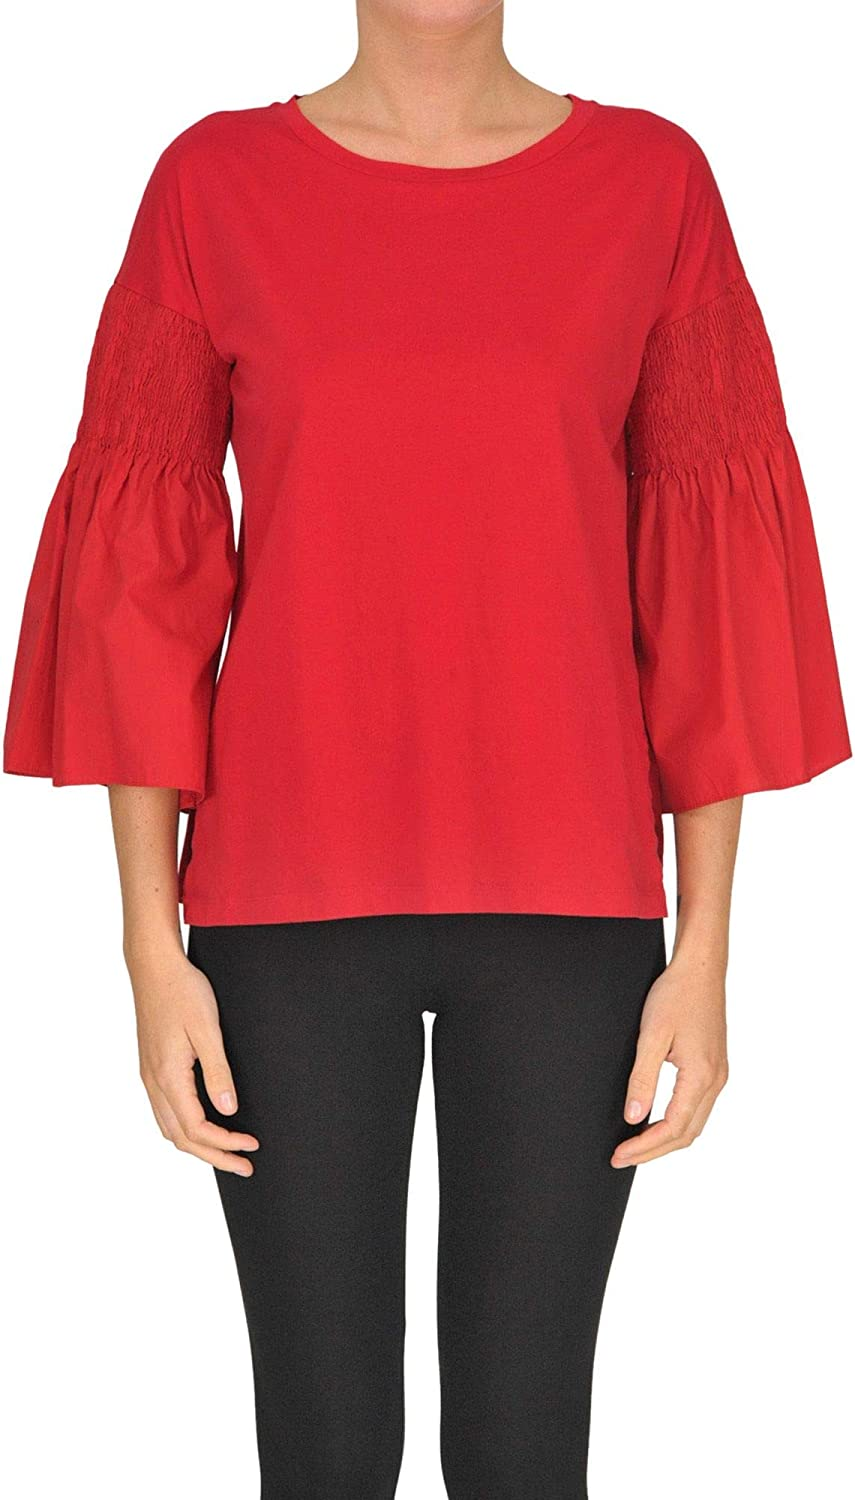 Seventy Women's MCGLTPS000005134E Red Cotton TShirt